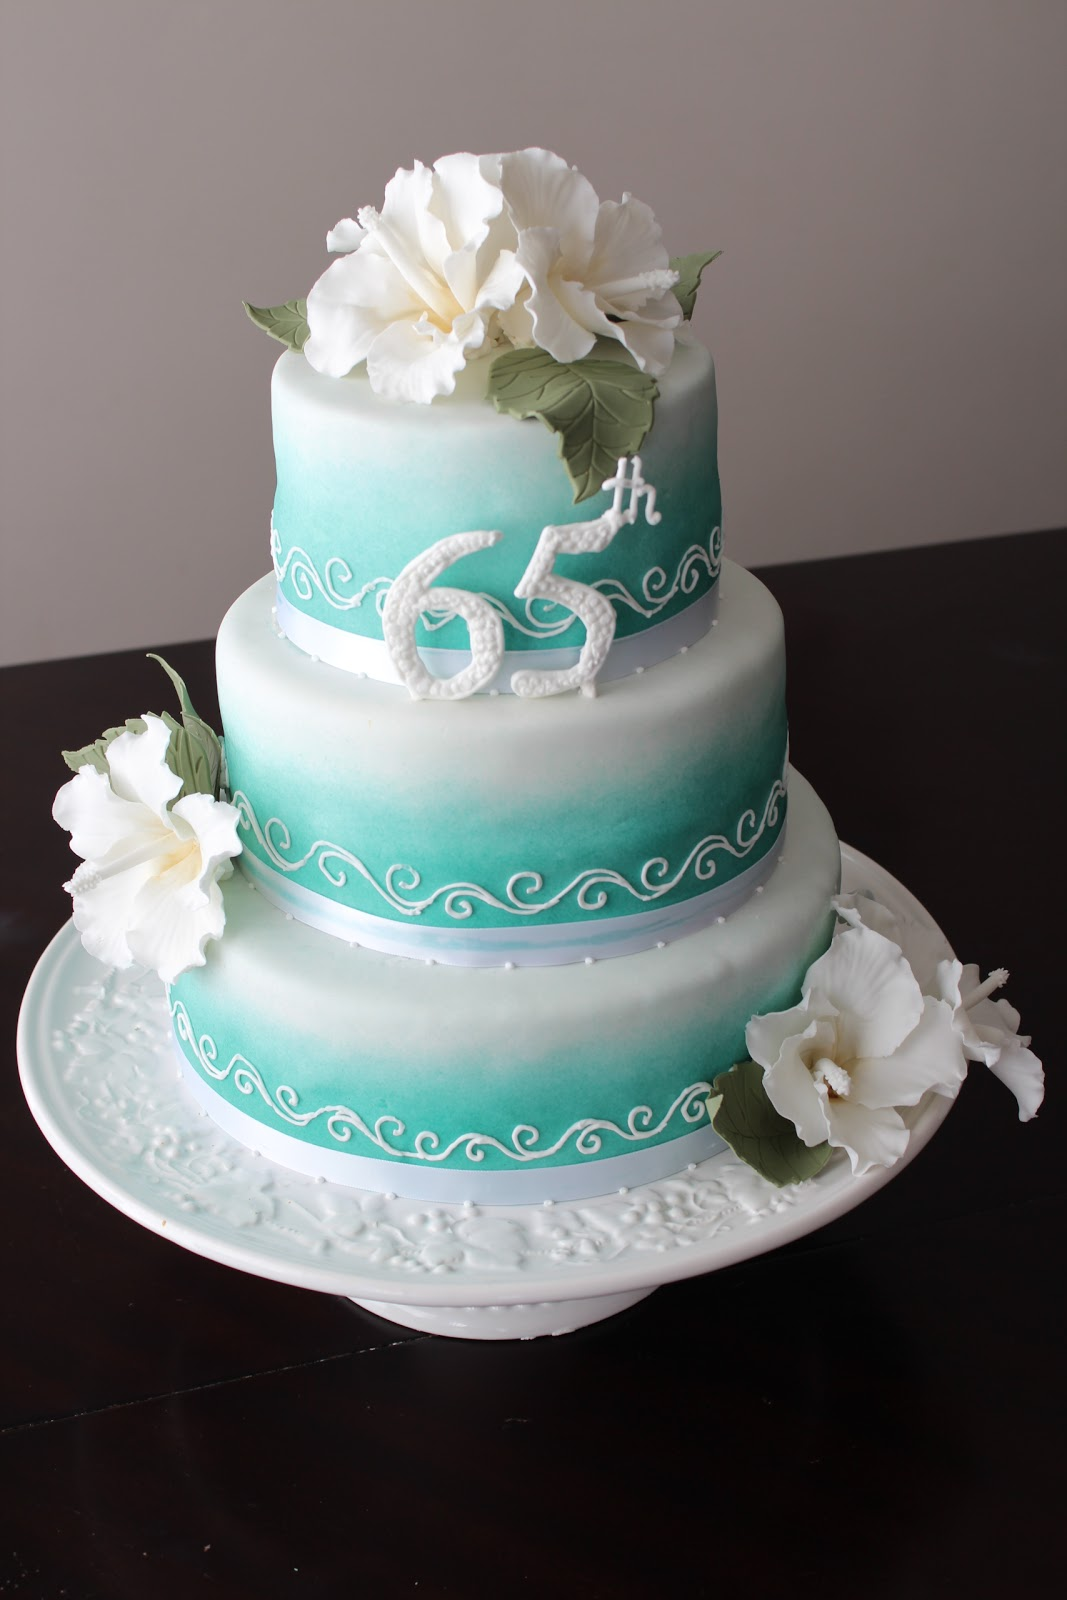 Cake Design For Moms : Moms+cake1.JPG 1,067x1,600 pixels Moms 65 BDay Pinterest